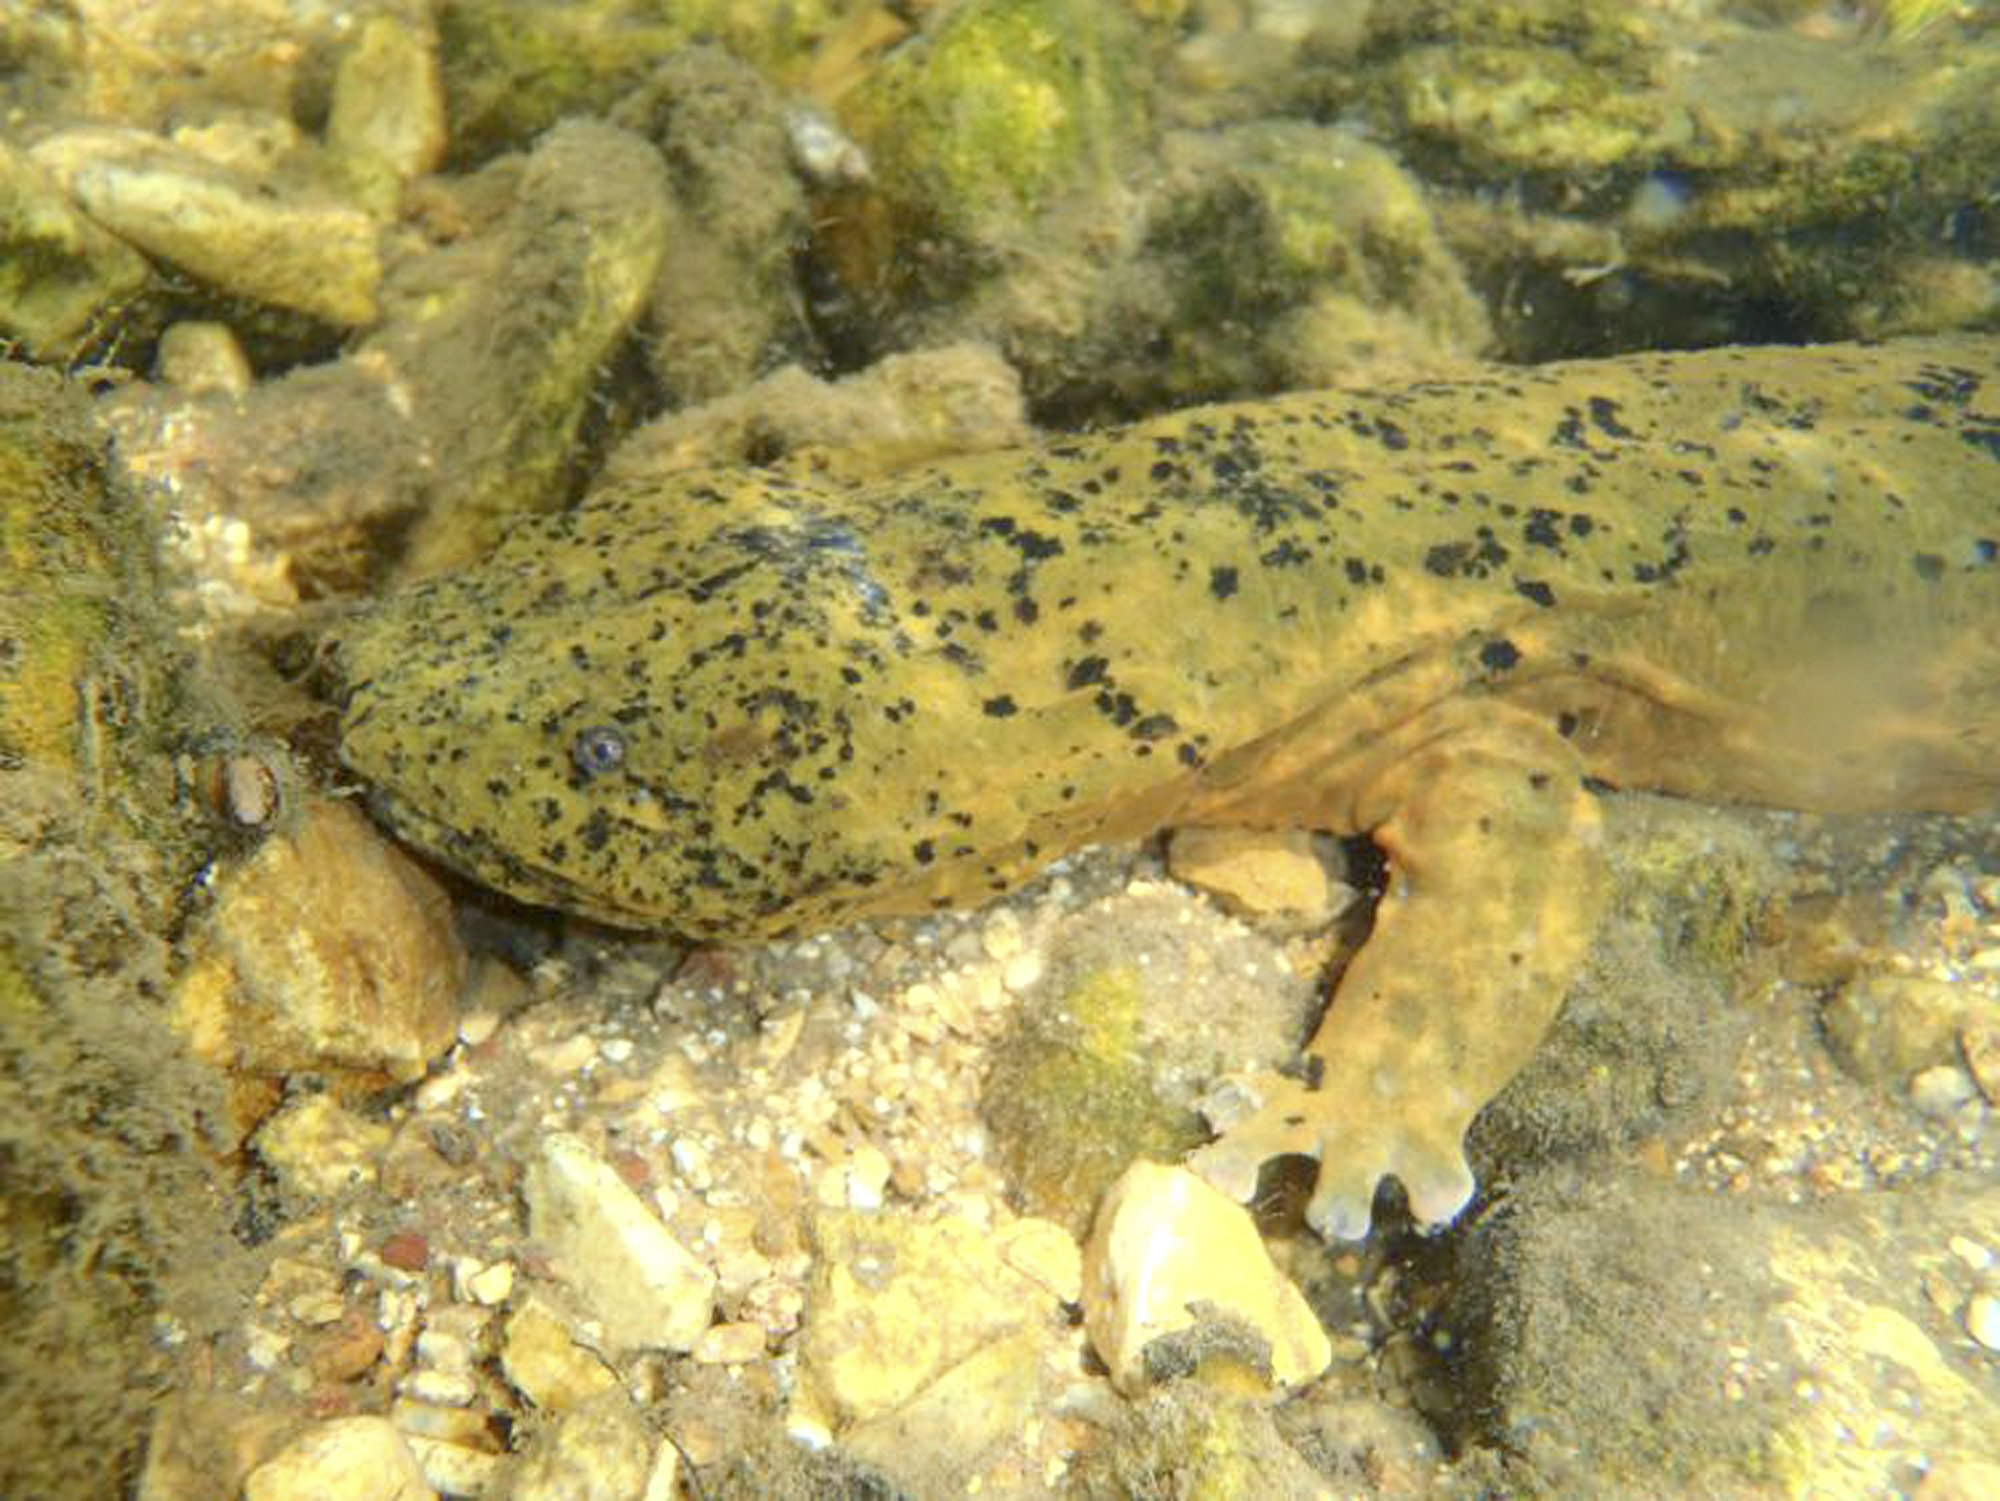 Pawpaw and hellbender could gain Missouri recognition